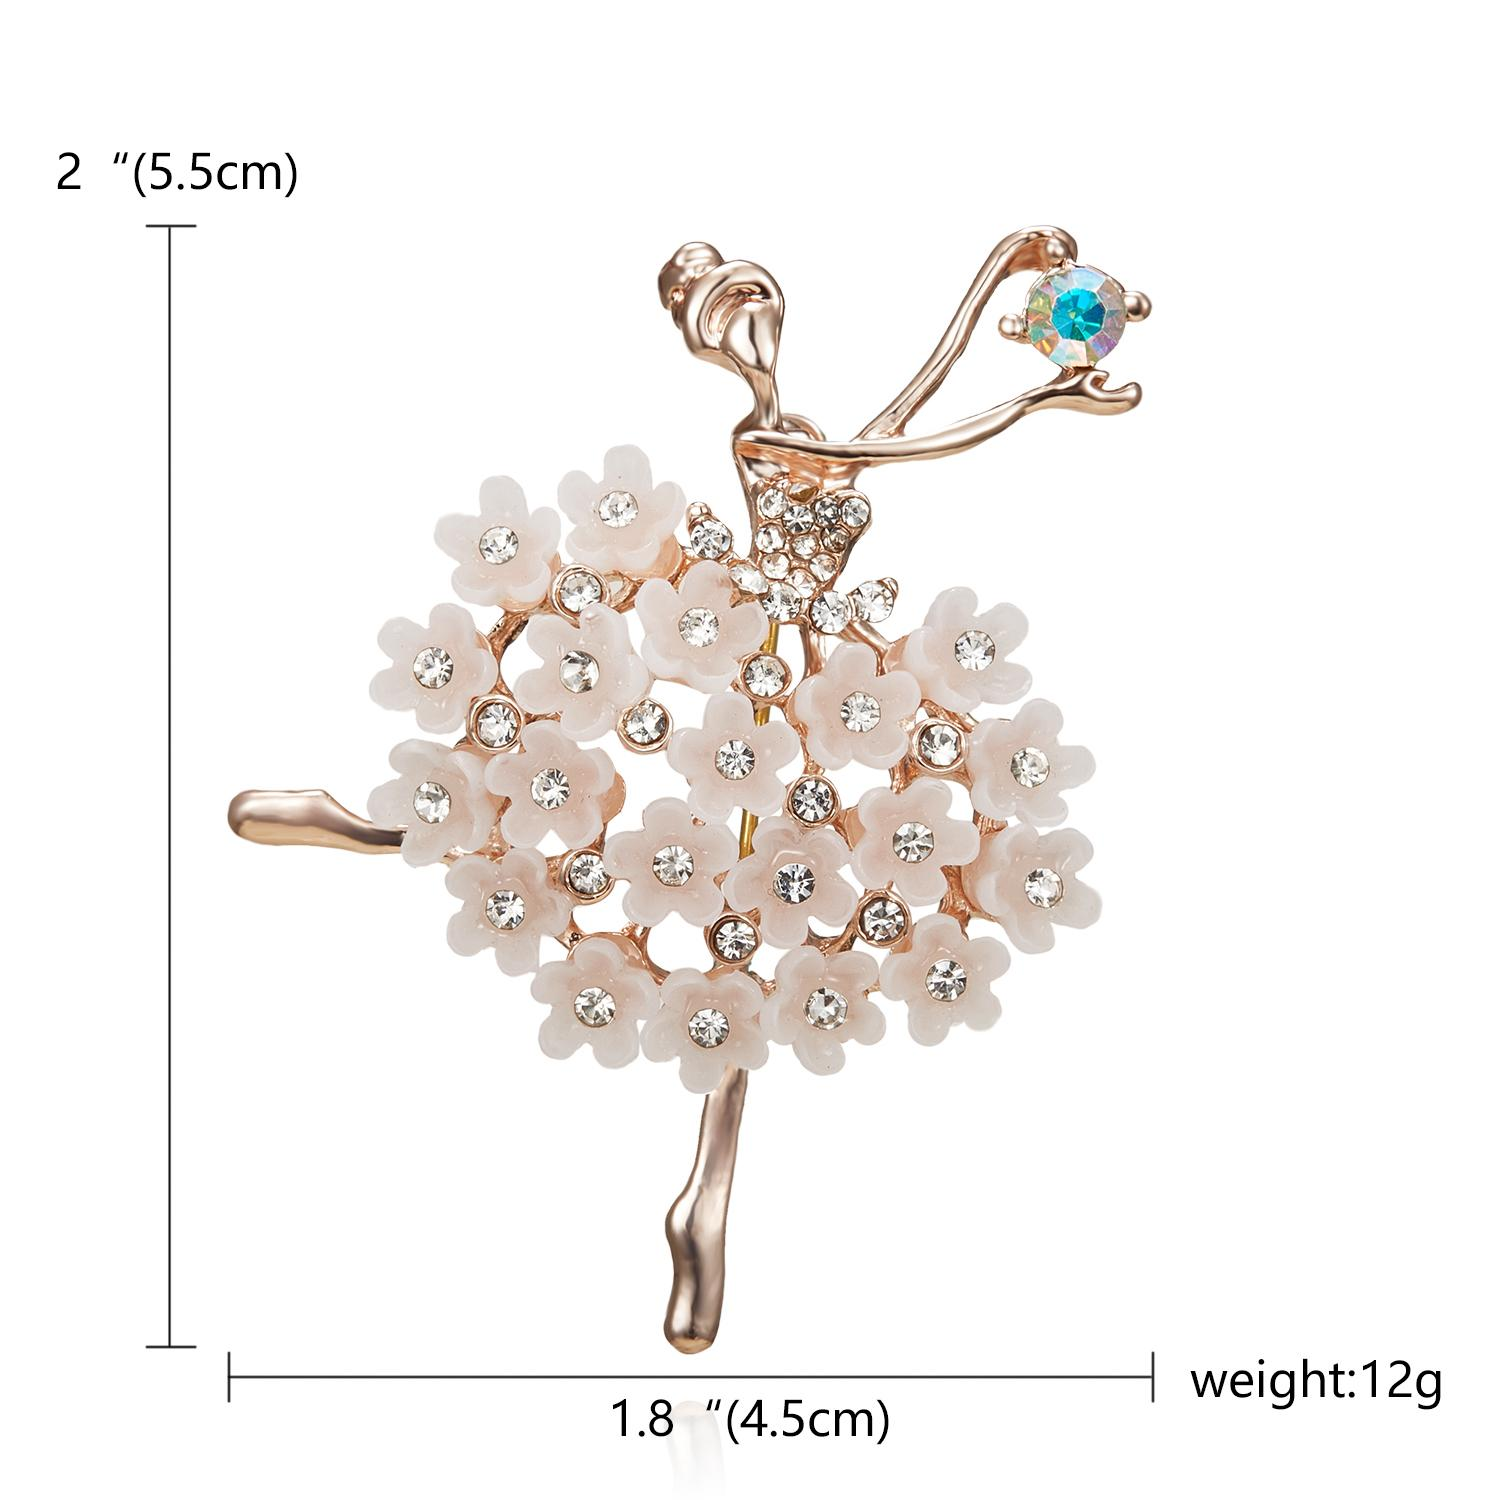 Wedding Rinhoo Swan Lake Factory Direct Sale Ballet Dancing Girl Shinning Crystal Glass Brooches for Woman in assorted designs